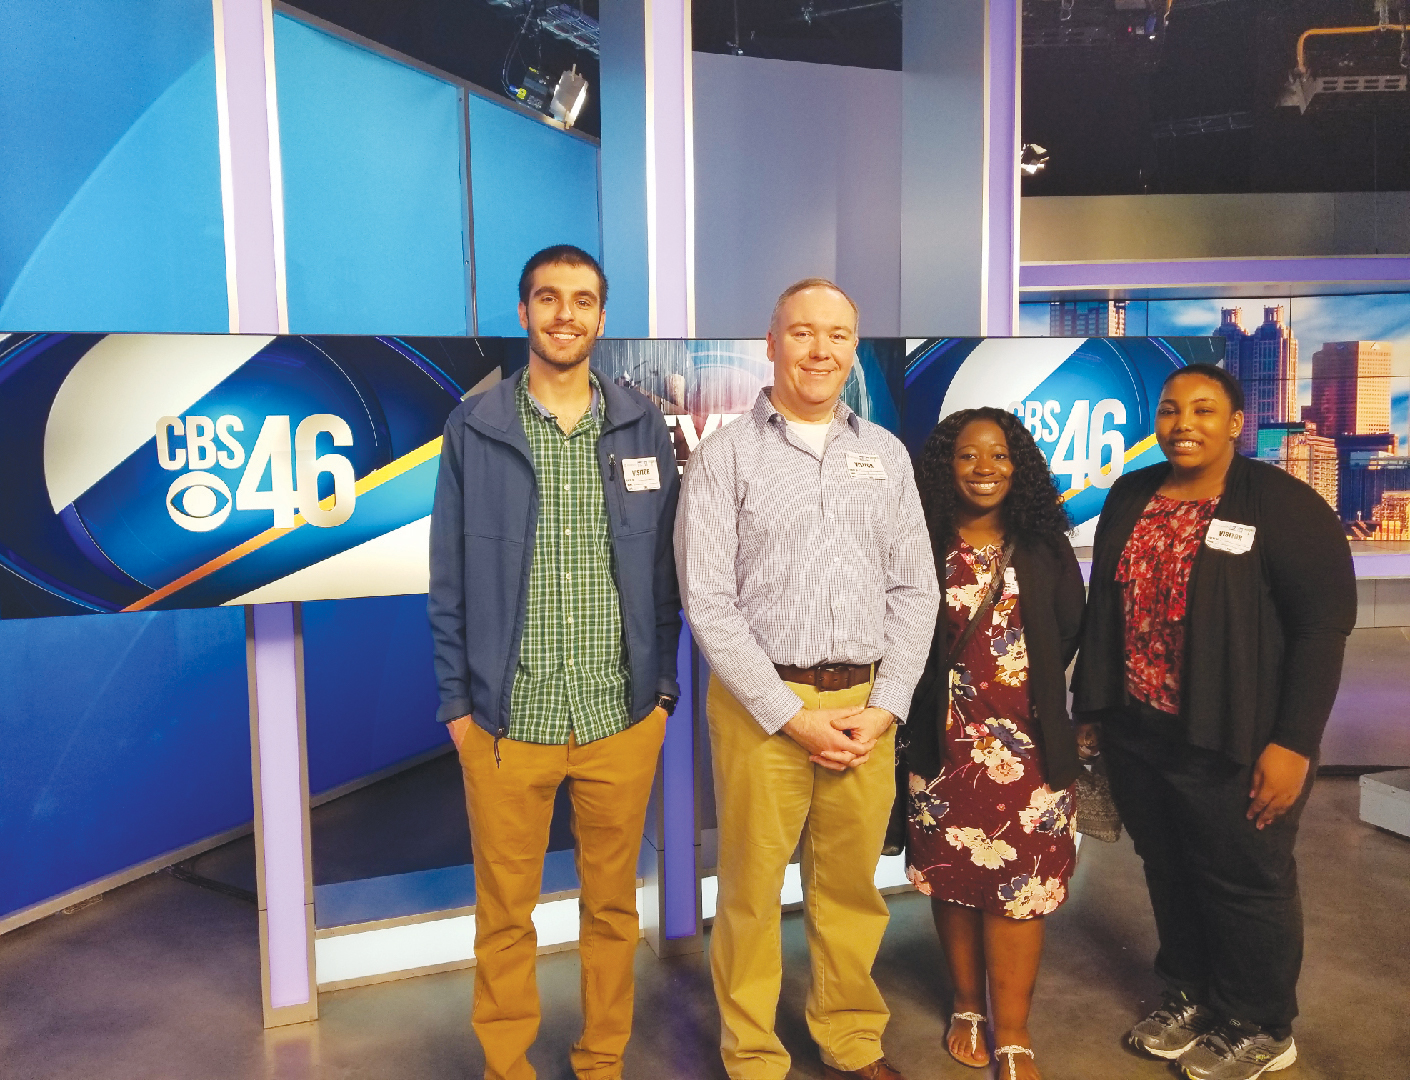 Mass Communication students Brandon Ryback, JaConna Brooker and Michelle Carter visit CBS46 during spring break.